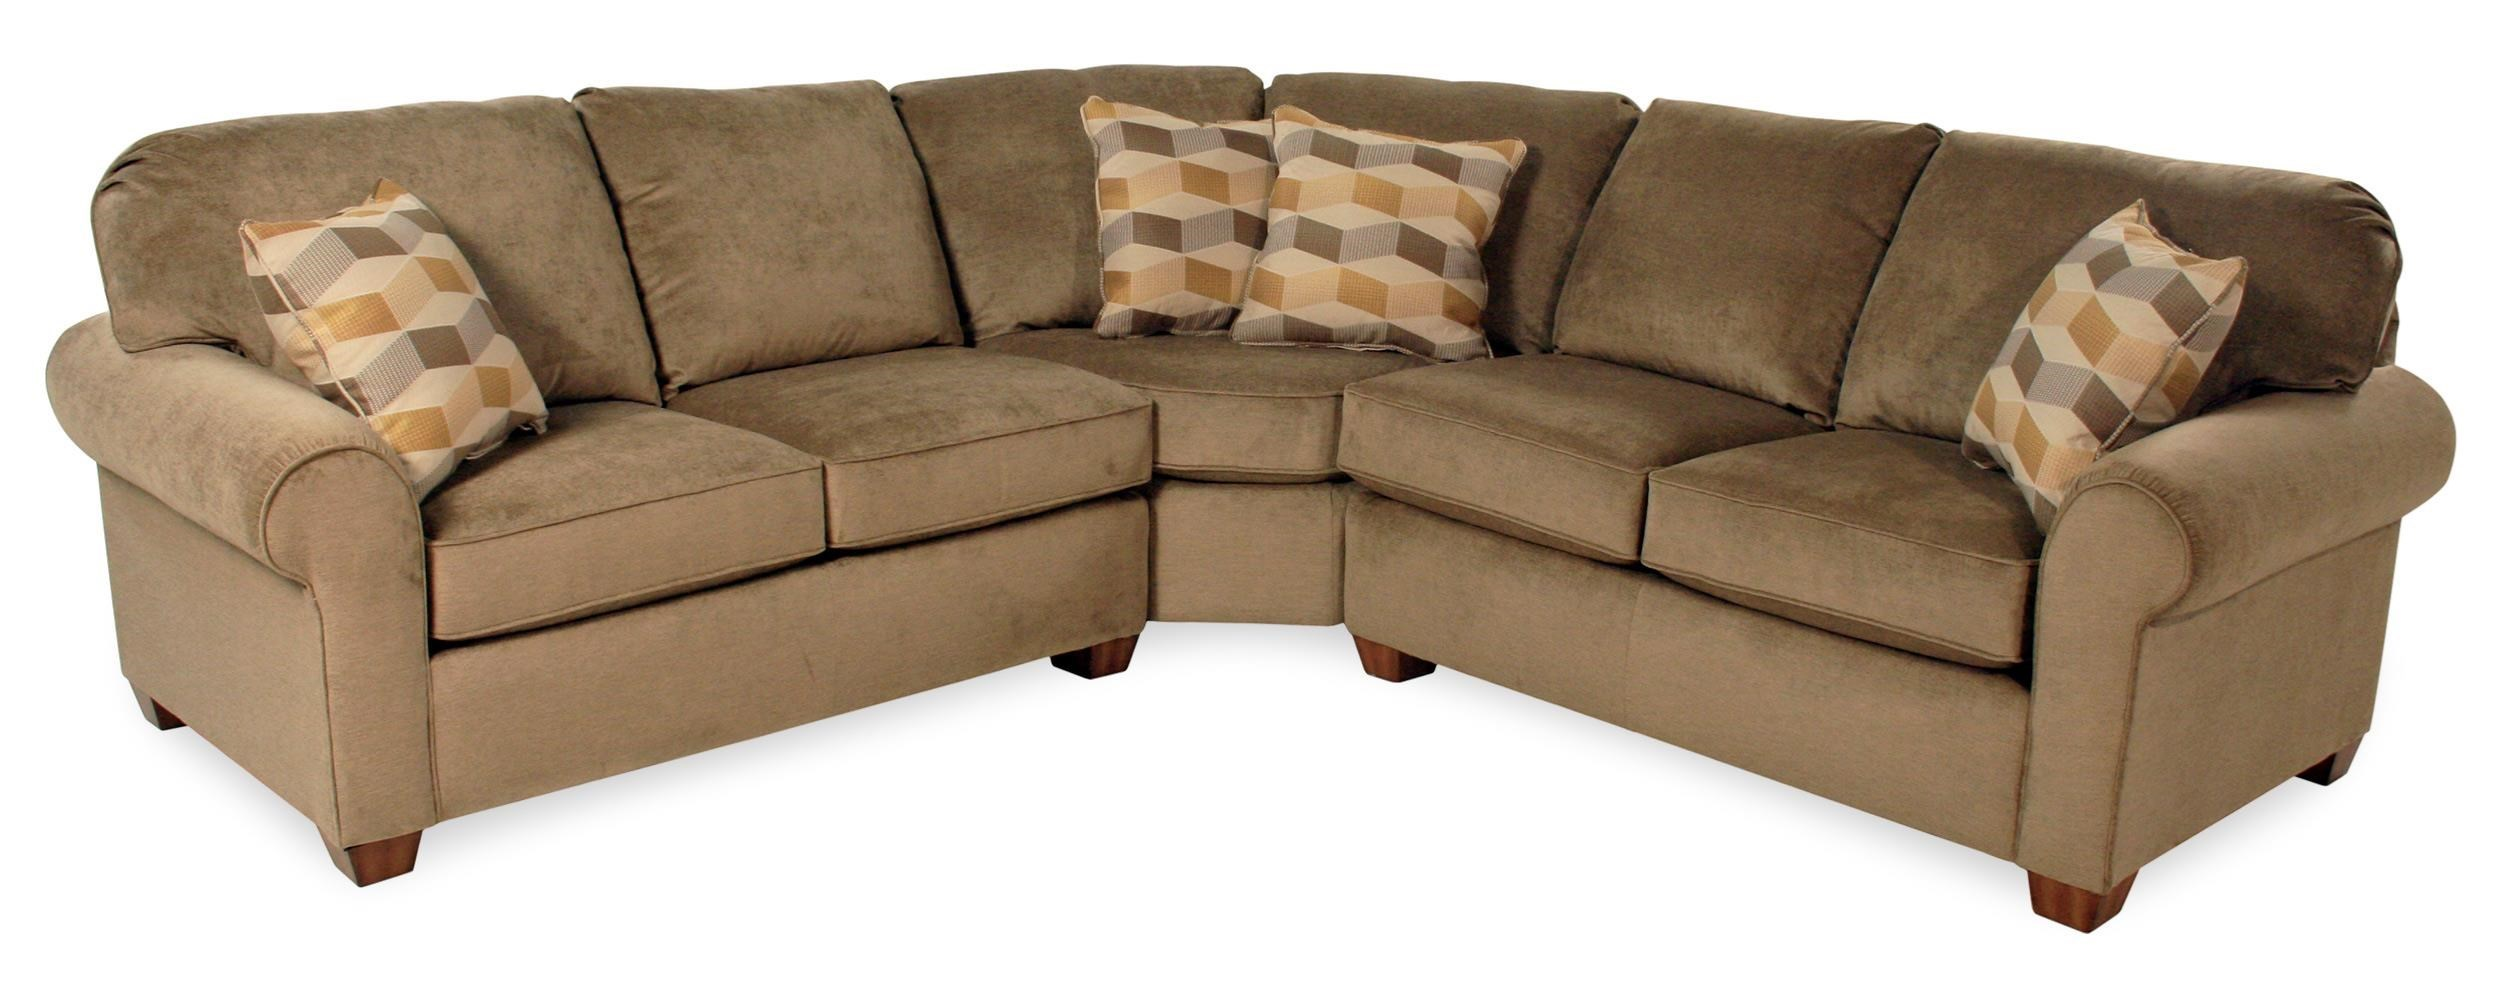 3 piece sectional sofa pacific coast cream 3 piece for Flexsteel 4 piece sectional sofa with right arm facing chaise in brown